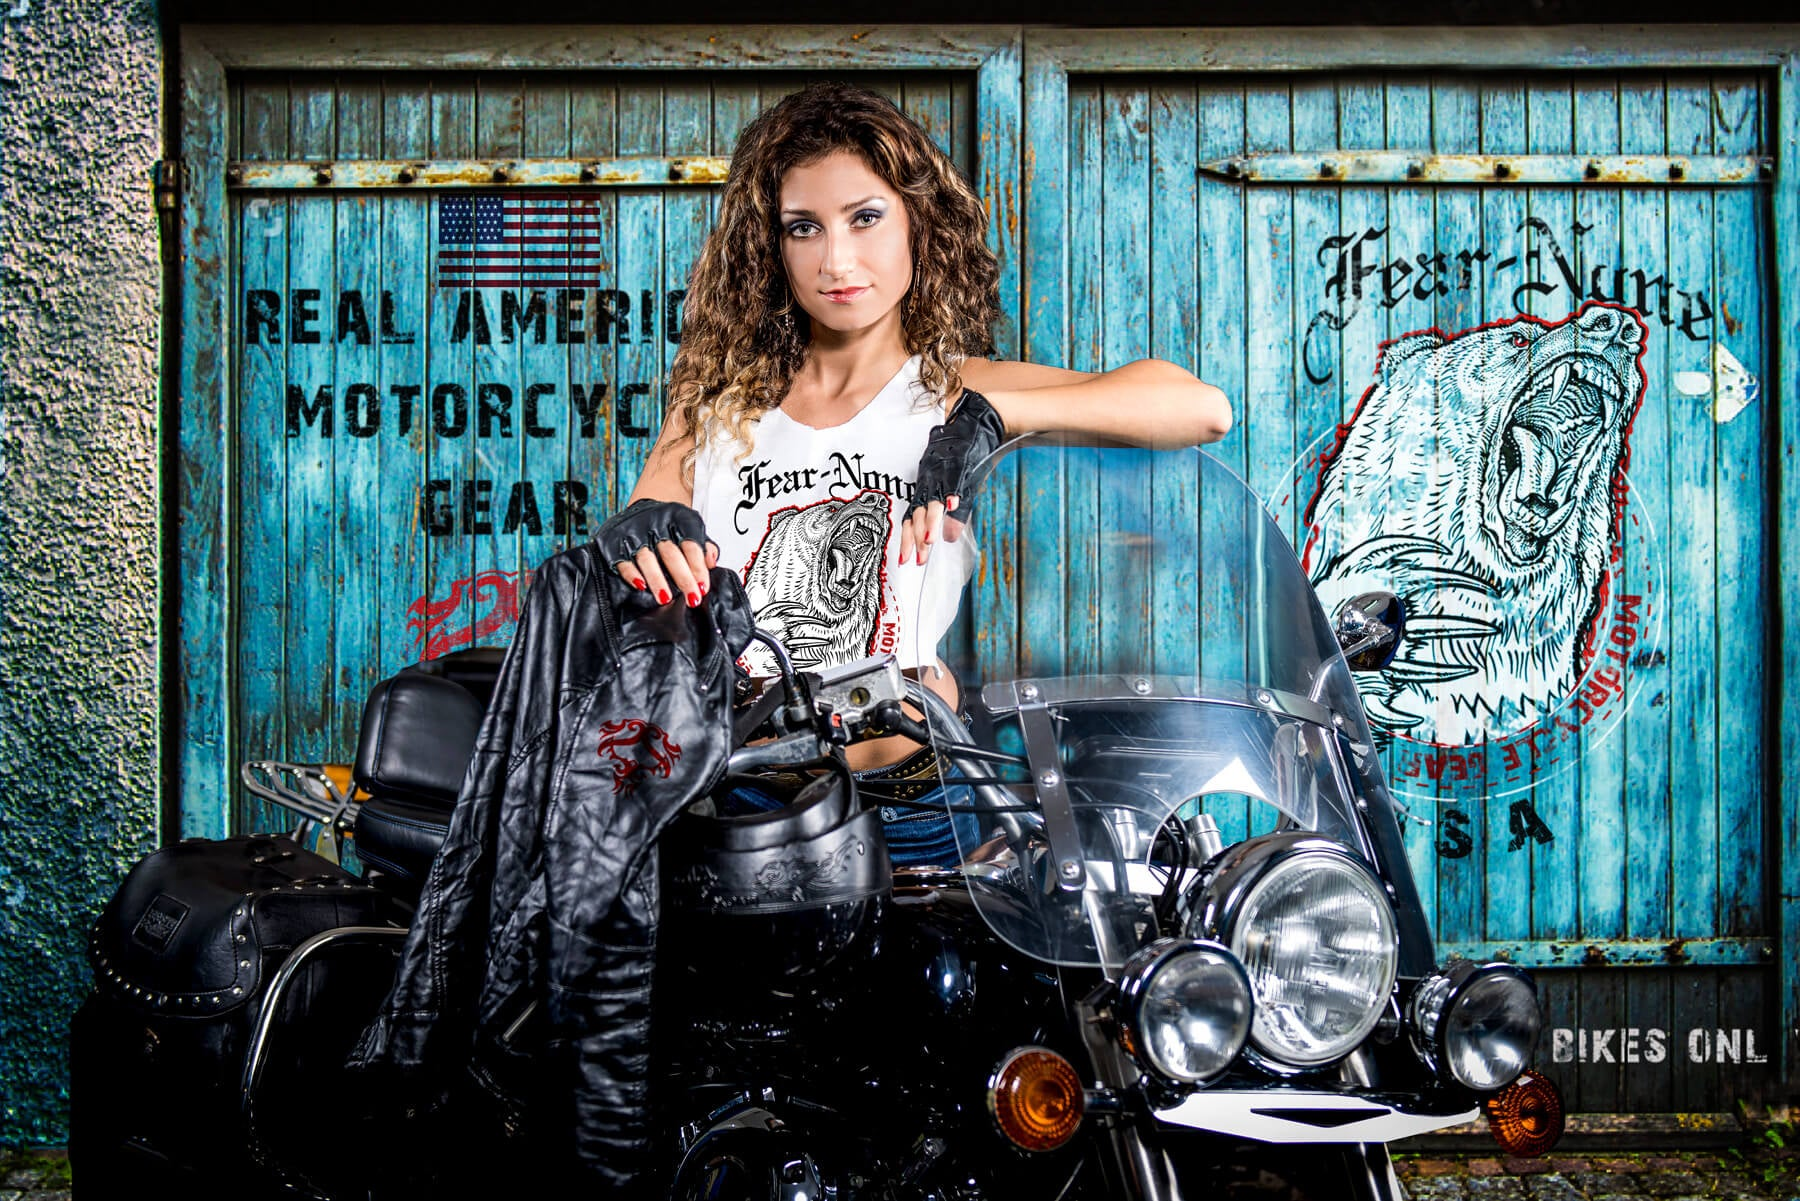 fear-none motorcycle gear womens shirts